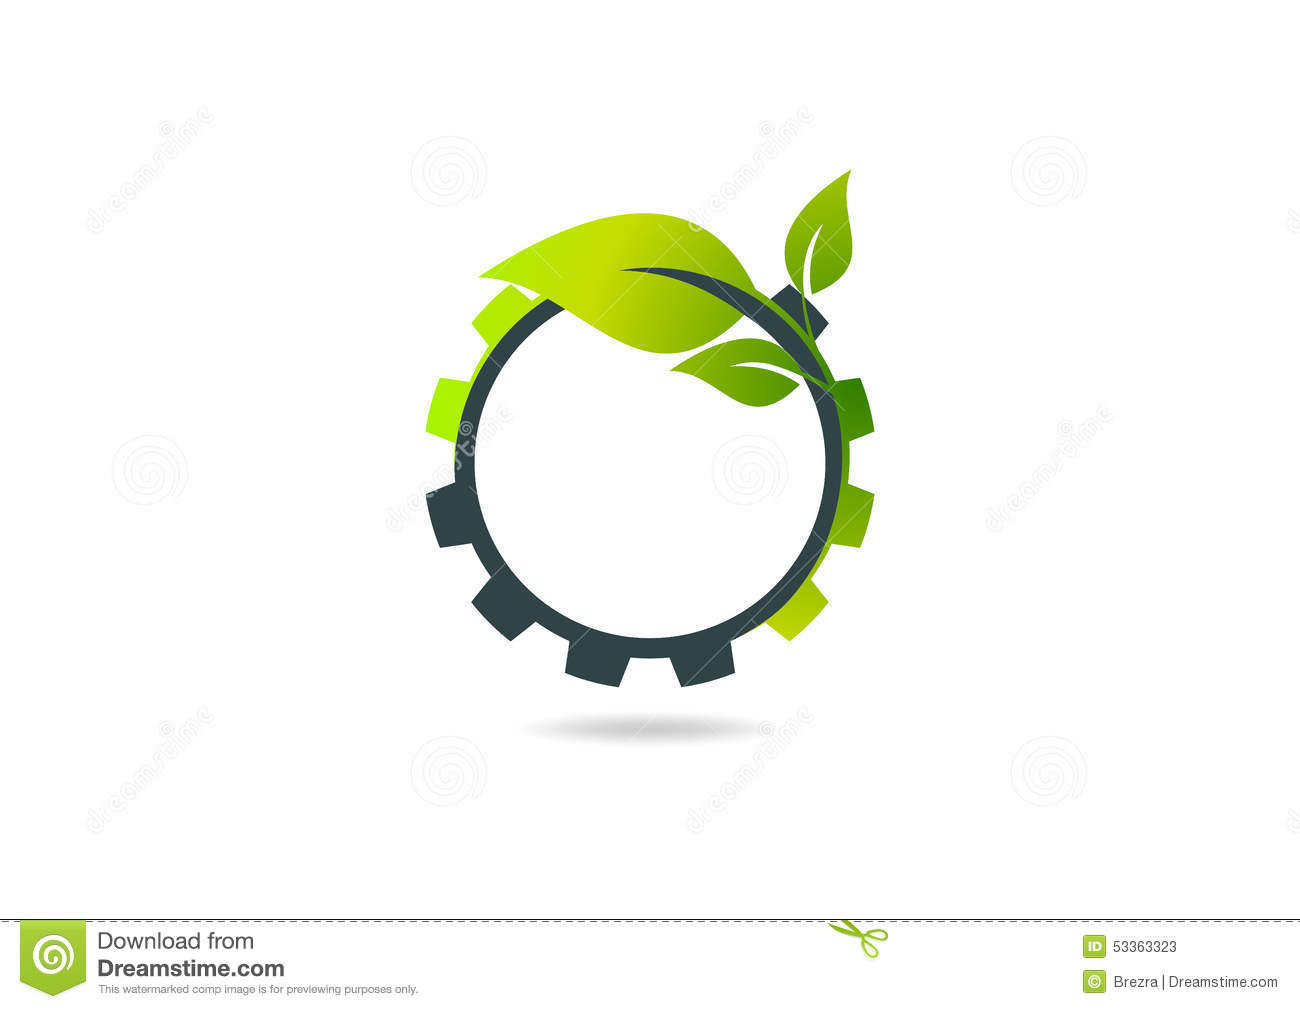 Gear Leaf, Plant Gear Vector Logo Design Stock Vector ... for Logo Design Samples Free Download  59jwn